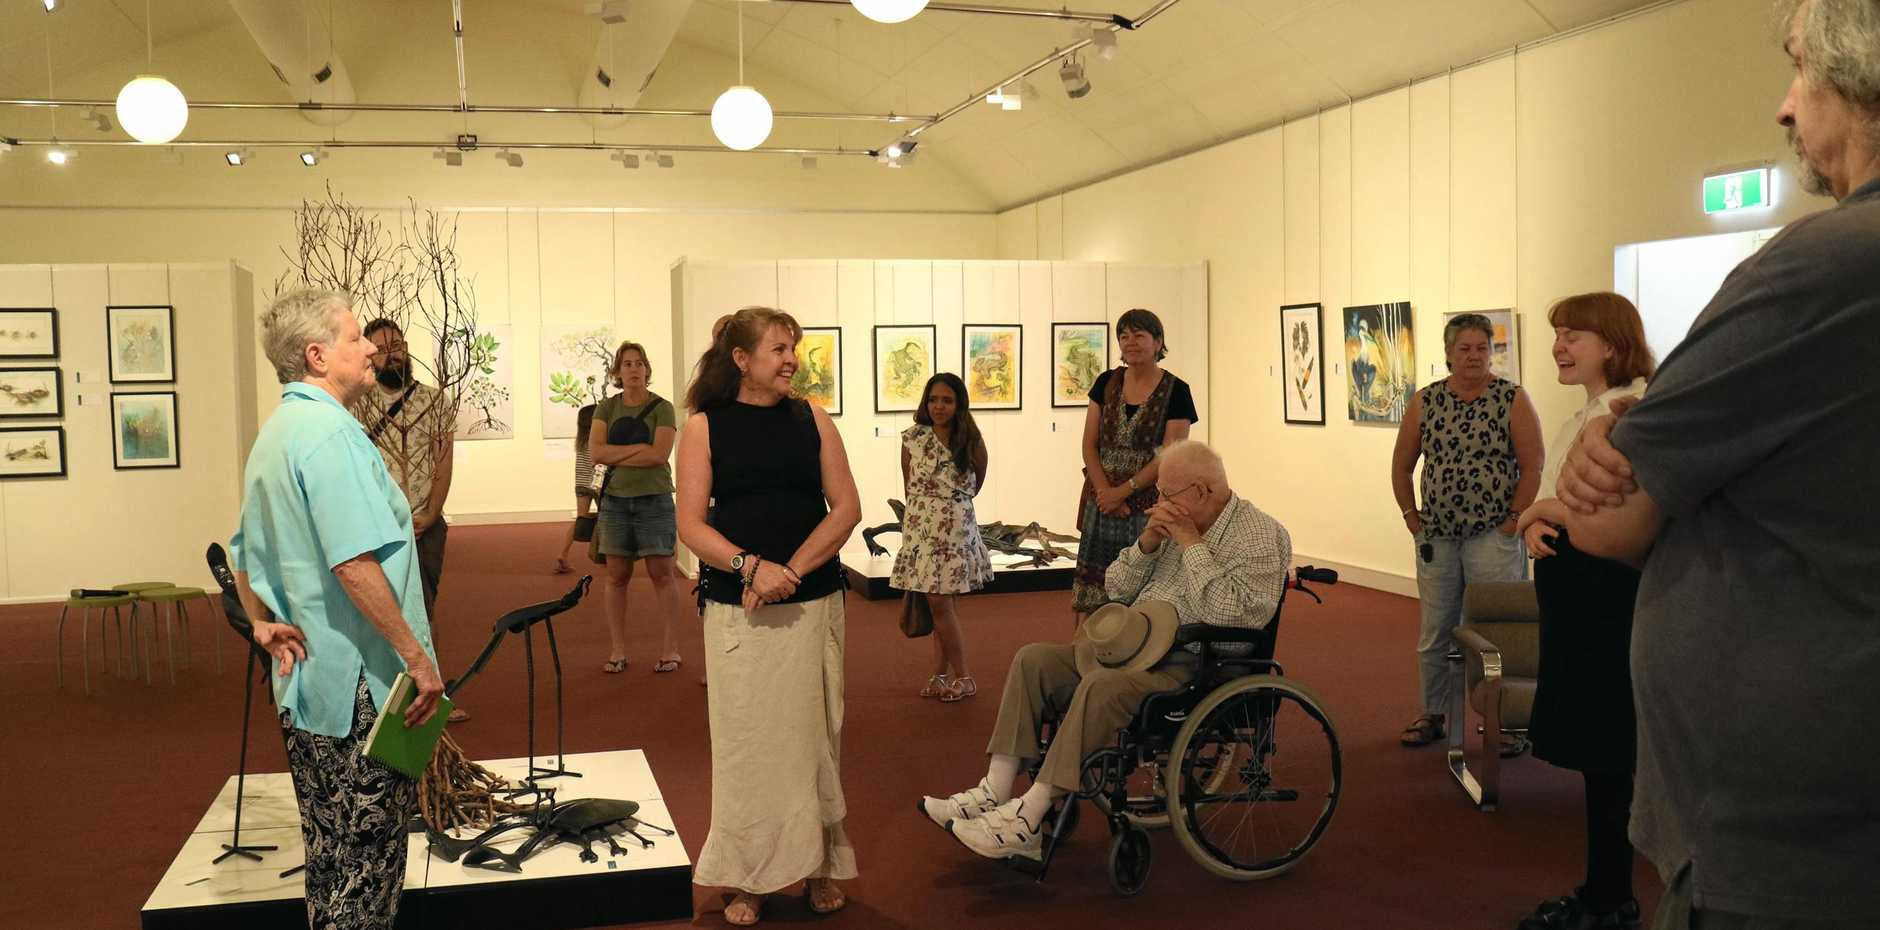 FRAGILE BALANCE: Local artists Rosemary Anderson and Jeanette Albury share their knowledge at an artist talk.